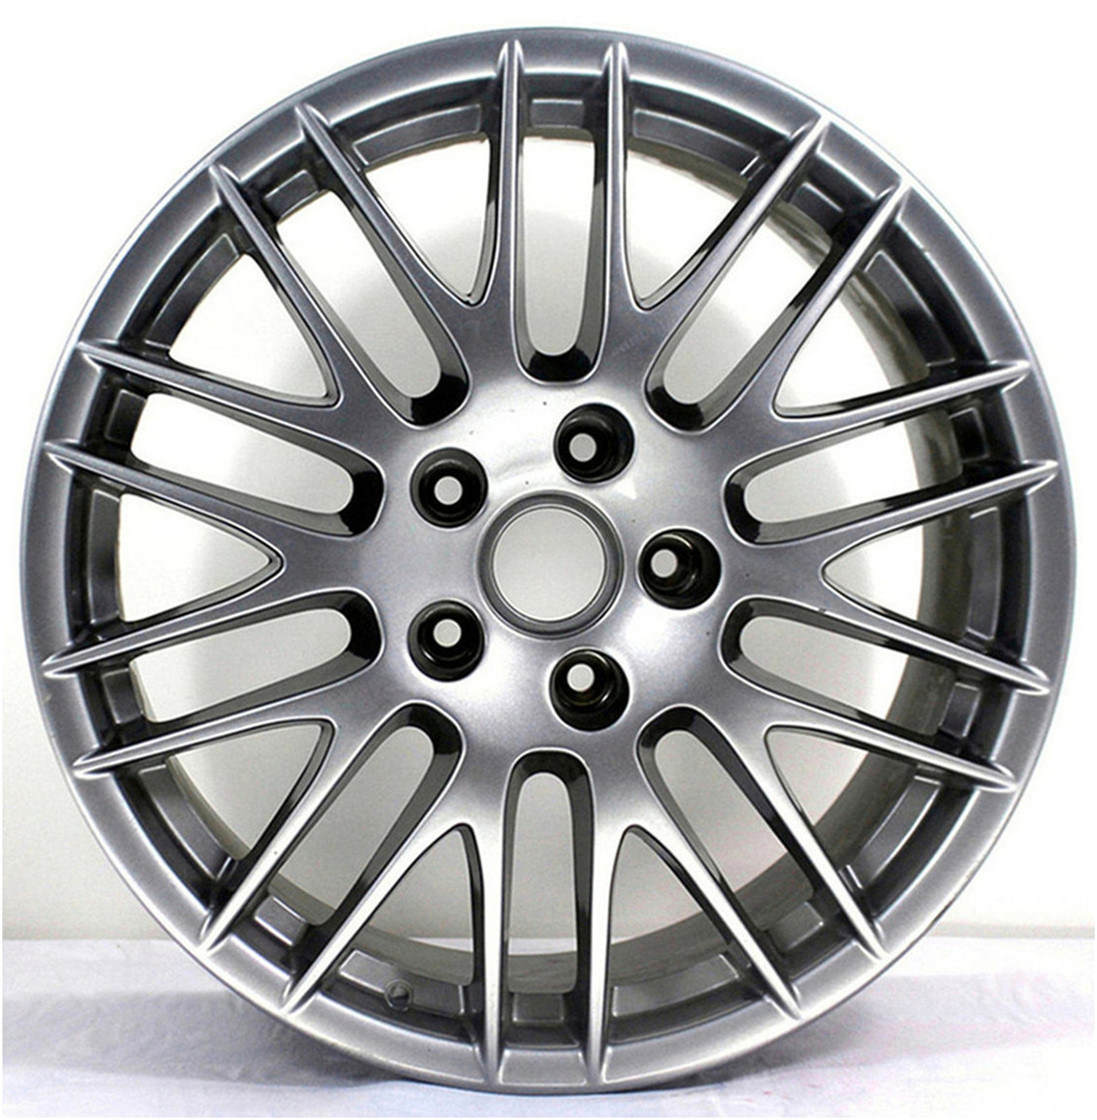 After Market Wheel Hub for Porsche Cayenne pictures & photos